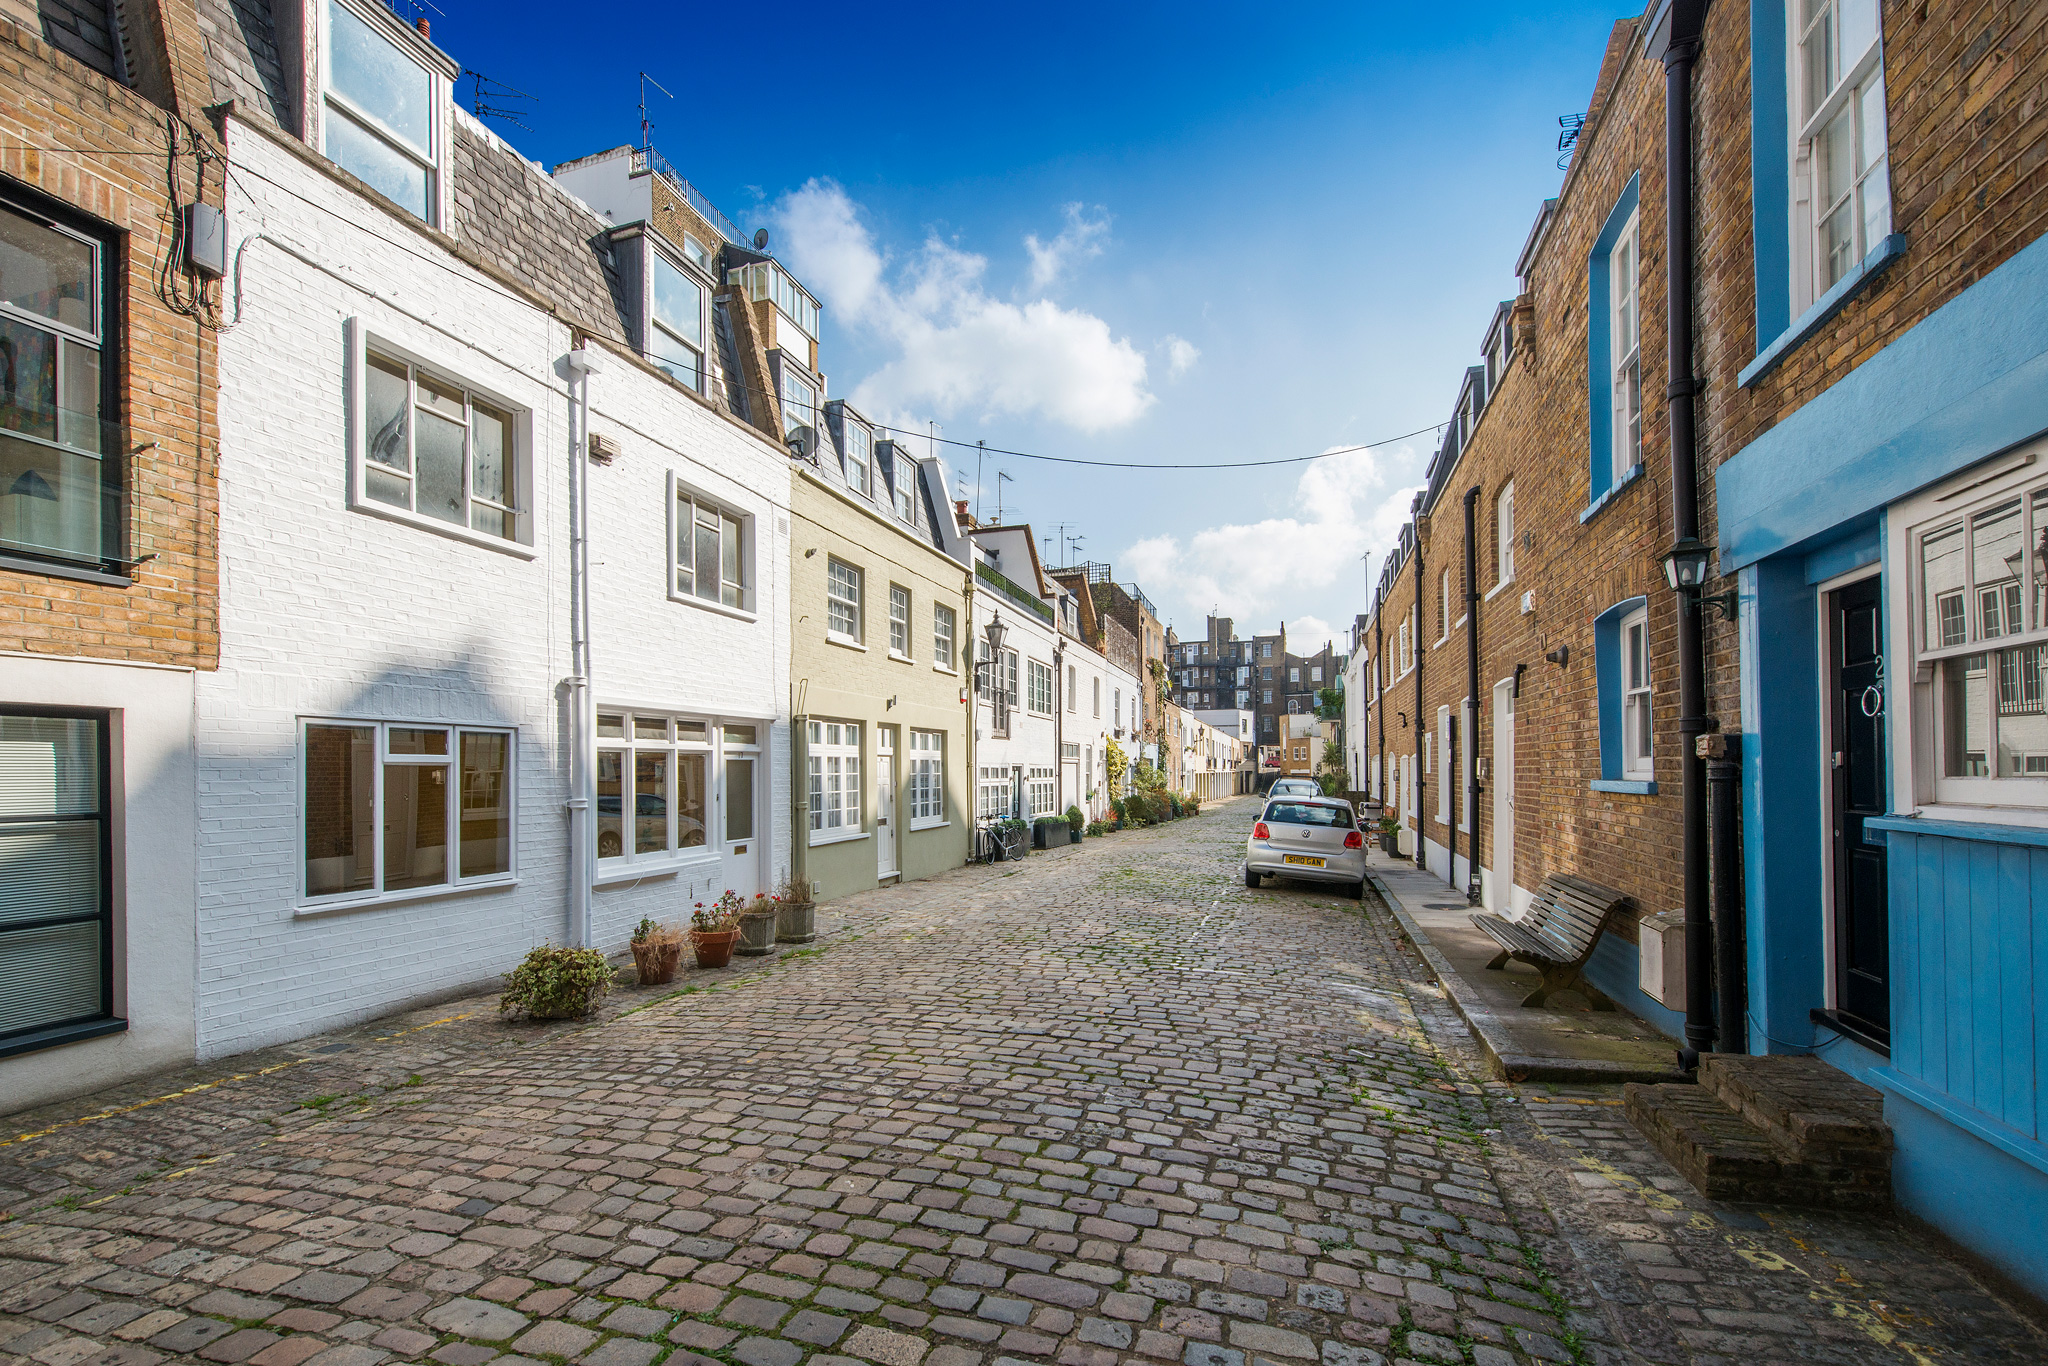 Upbrook Mews - which is about 3 metres below the level of the main houses around it